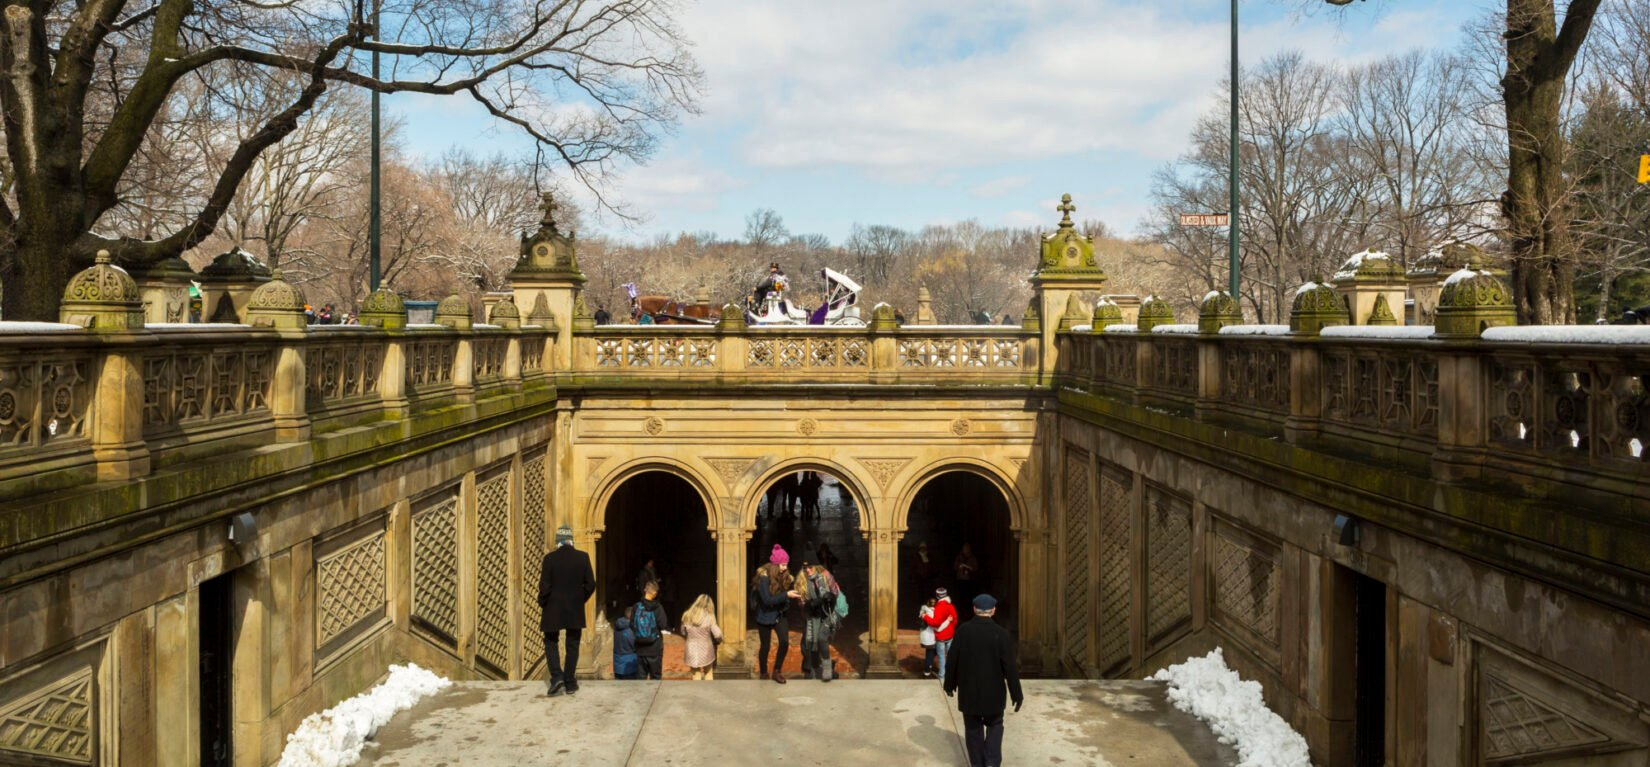 Looking north at a roadway with Bethesda Arcade below and a horse carraige crossing above